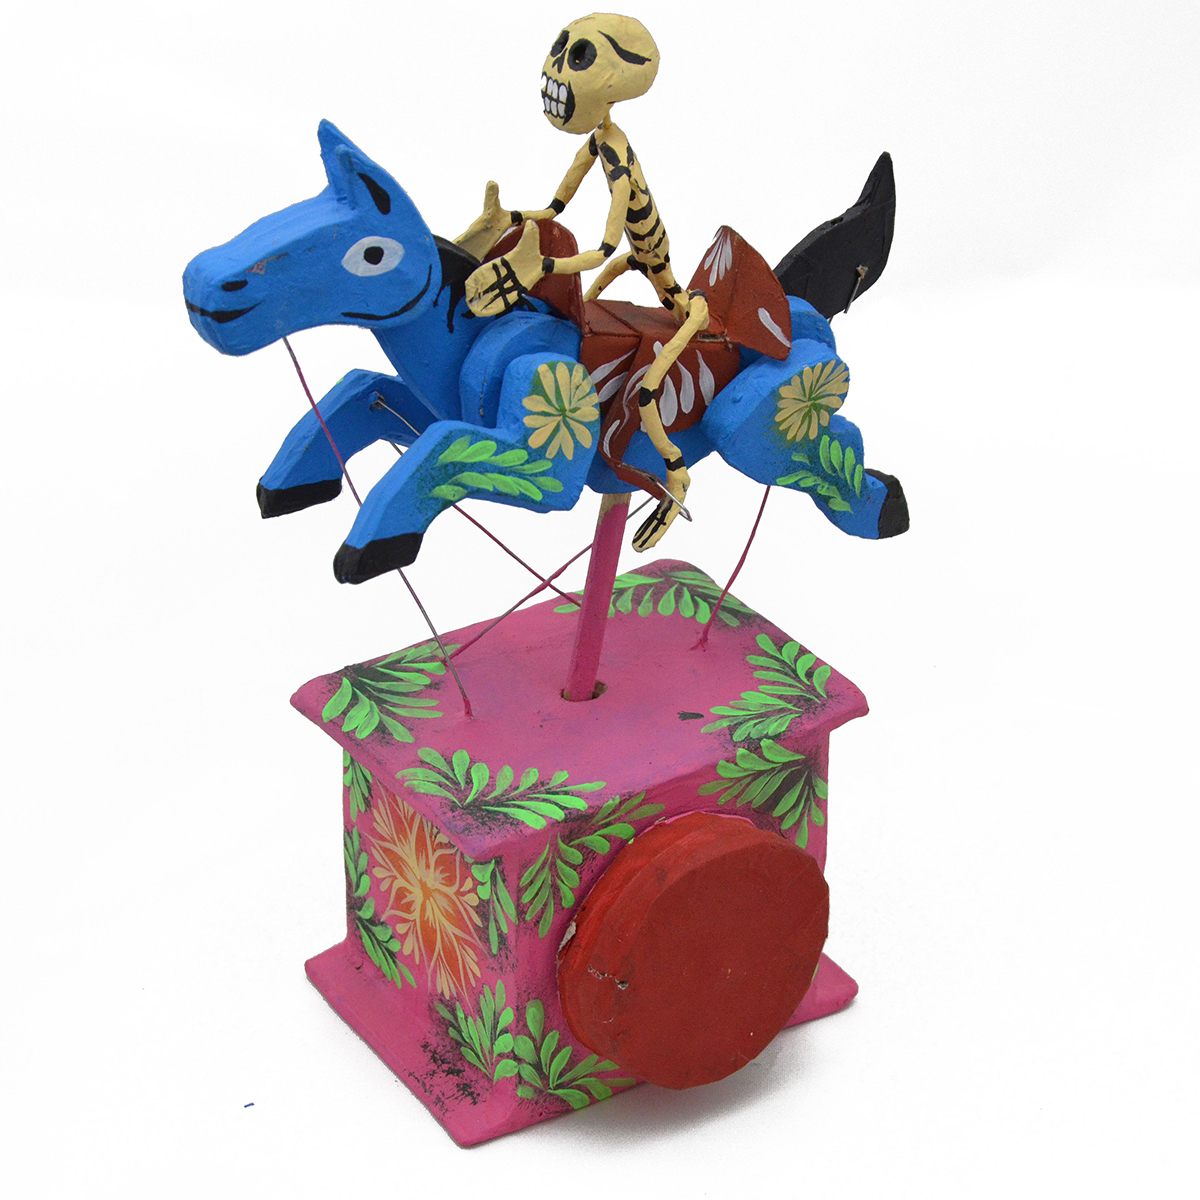 Mechanical Folk Art Josue Eleazar Castro: Blue Galloping Horse cartoneria